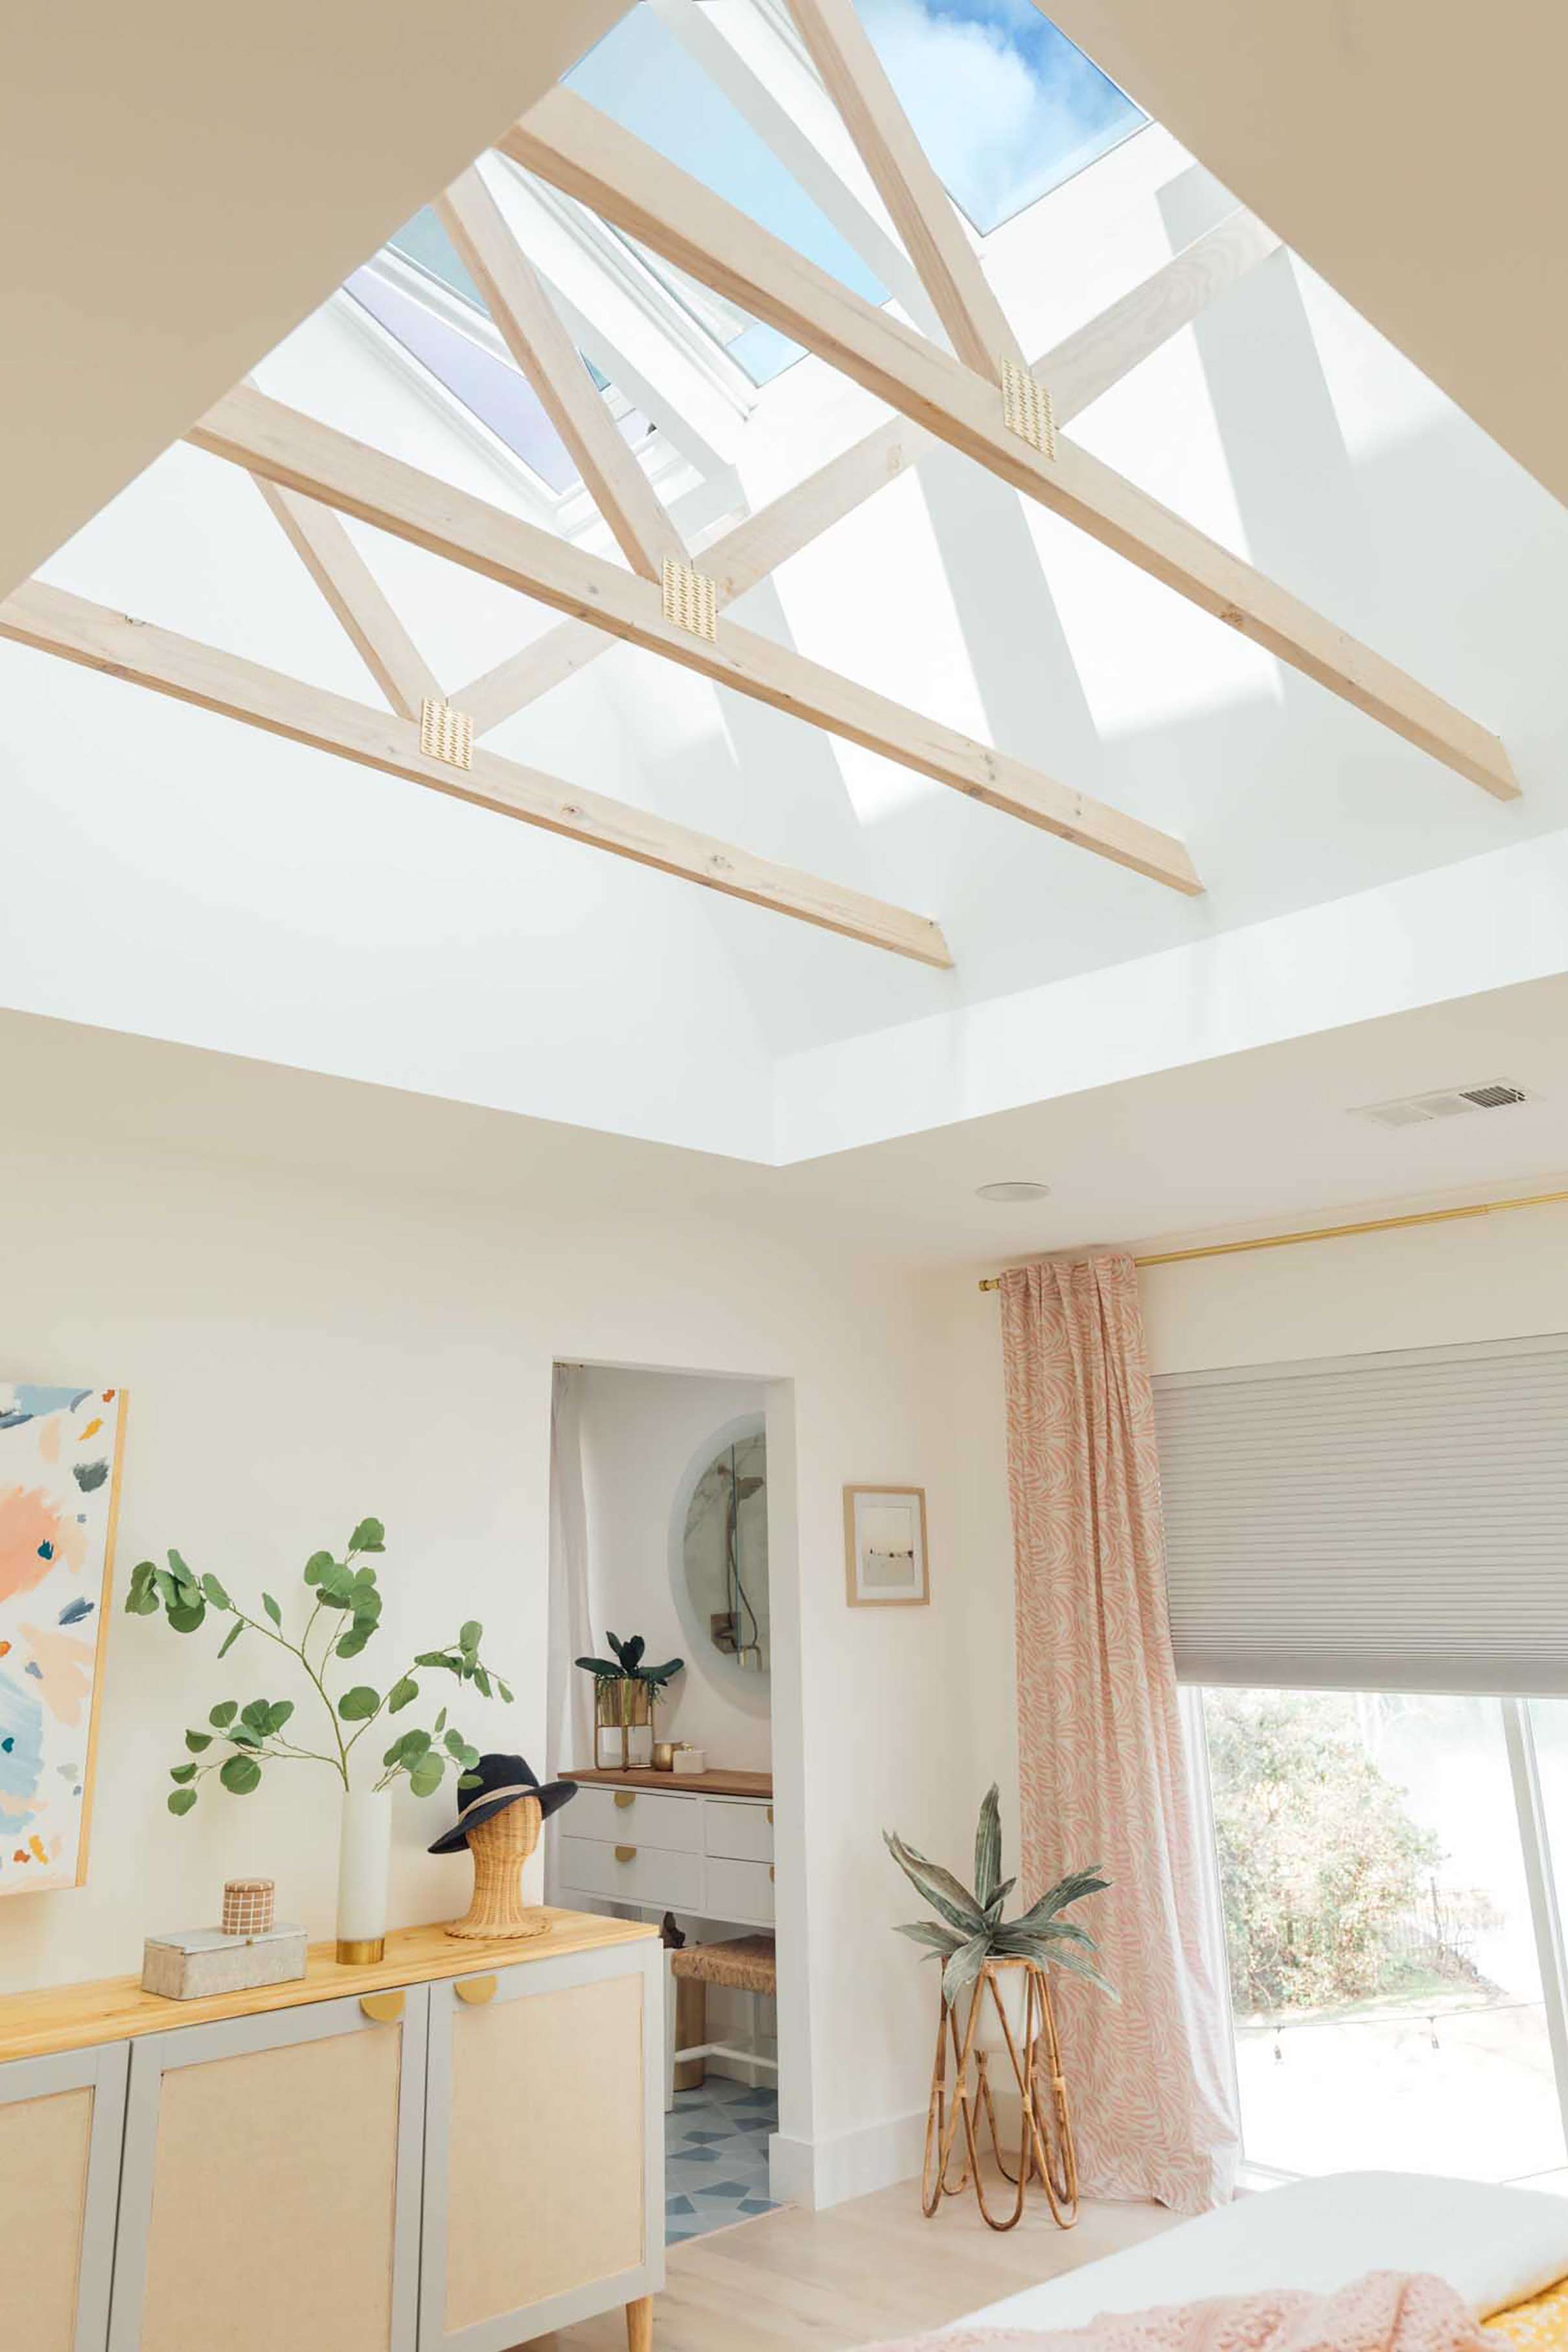 Bedroom with pink and yellow color accents and three skylights with exposed trusses.